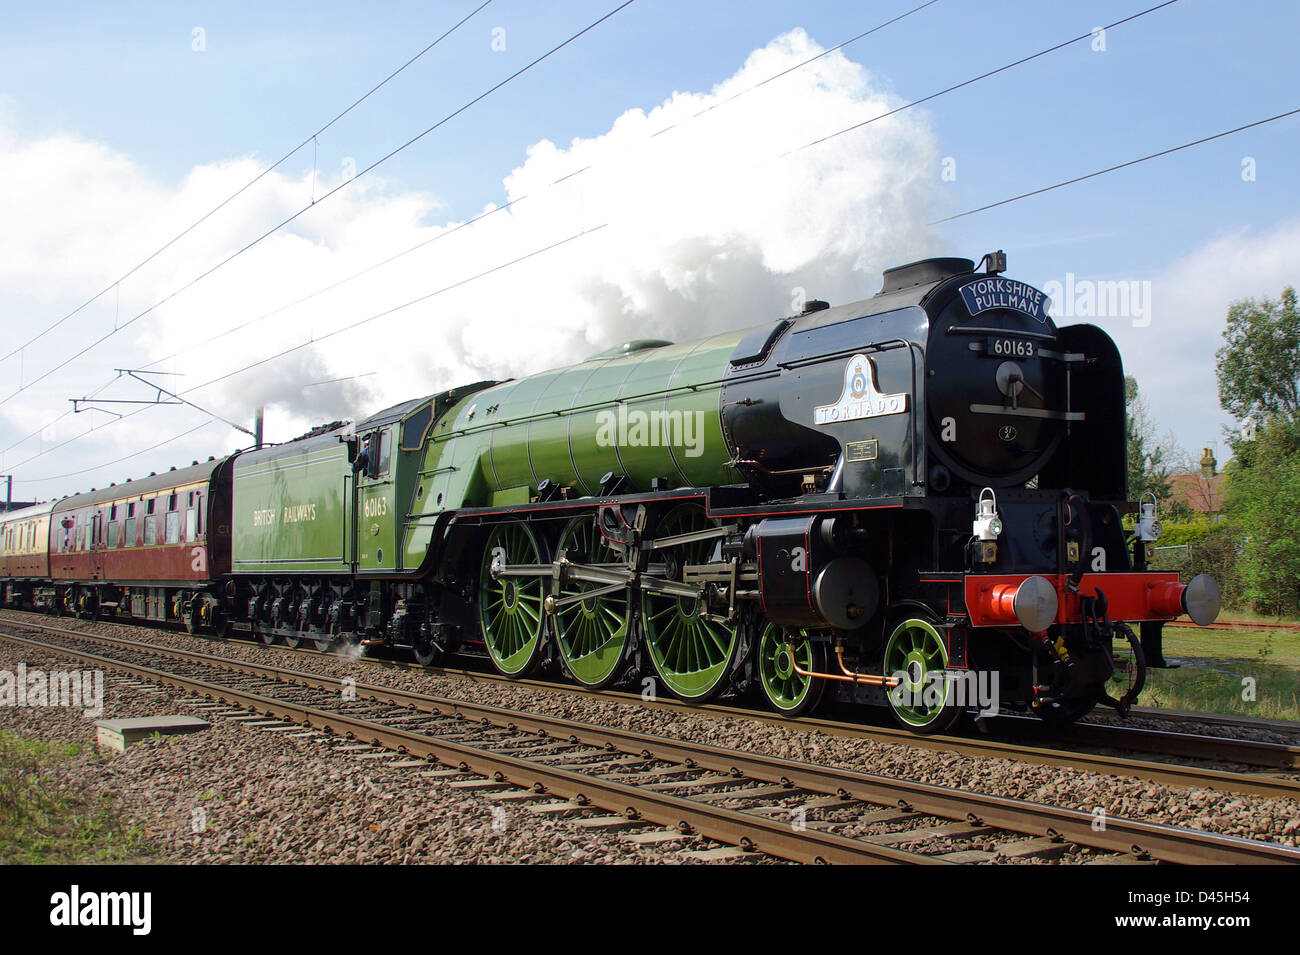 60163 Tornado is a mainline steam locomotive built in Darlington, England. Completed in 2008 it often runs on UK Stock Photo